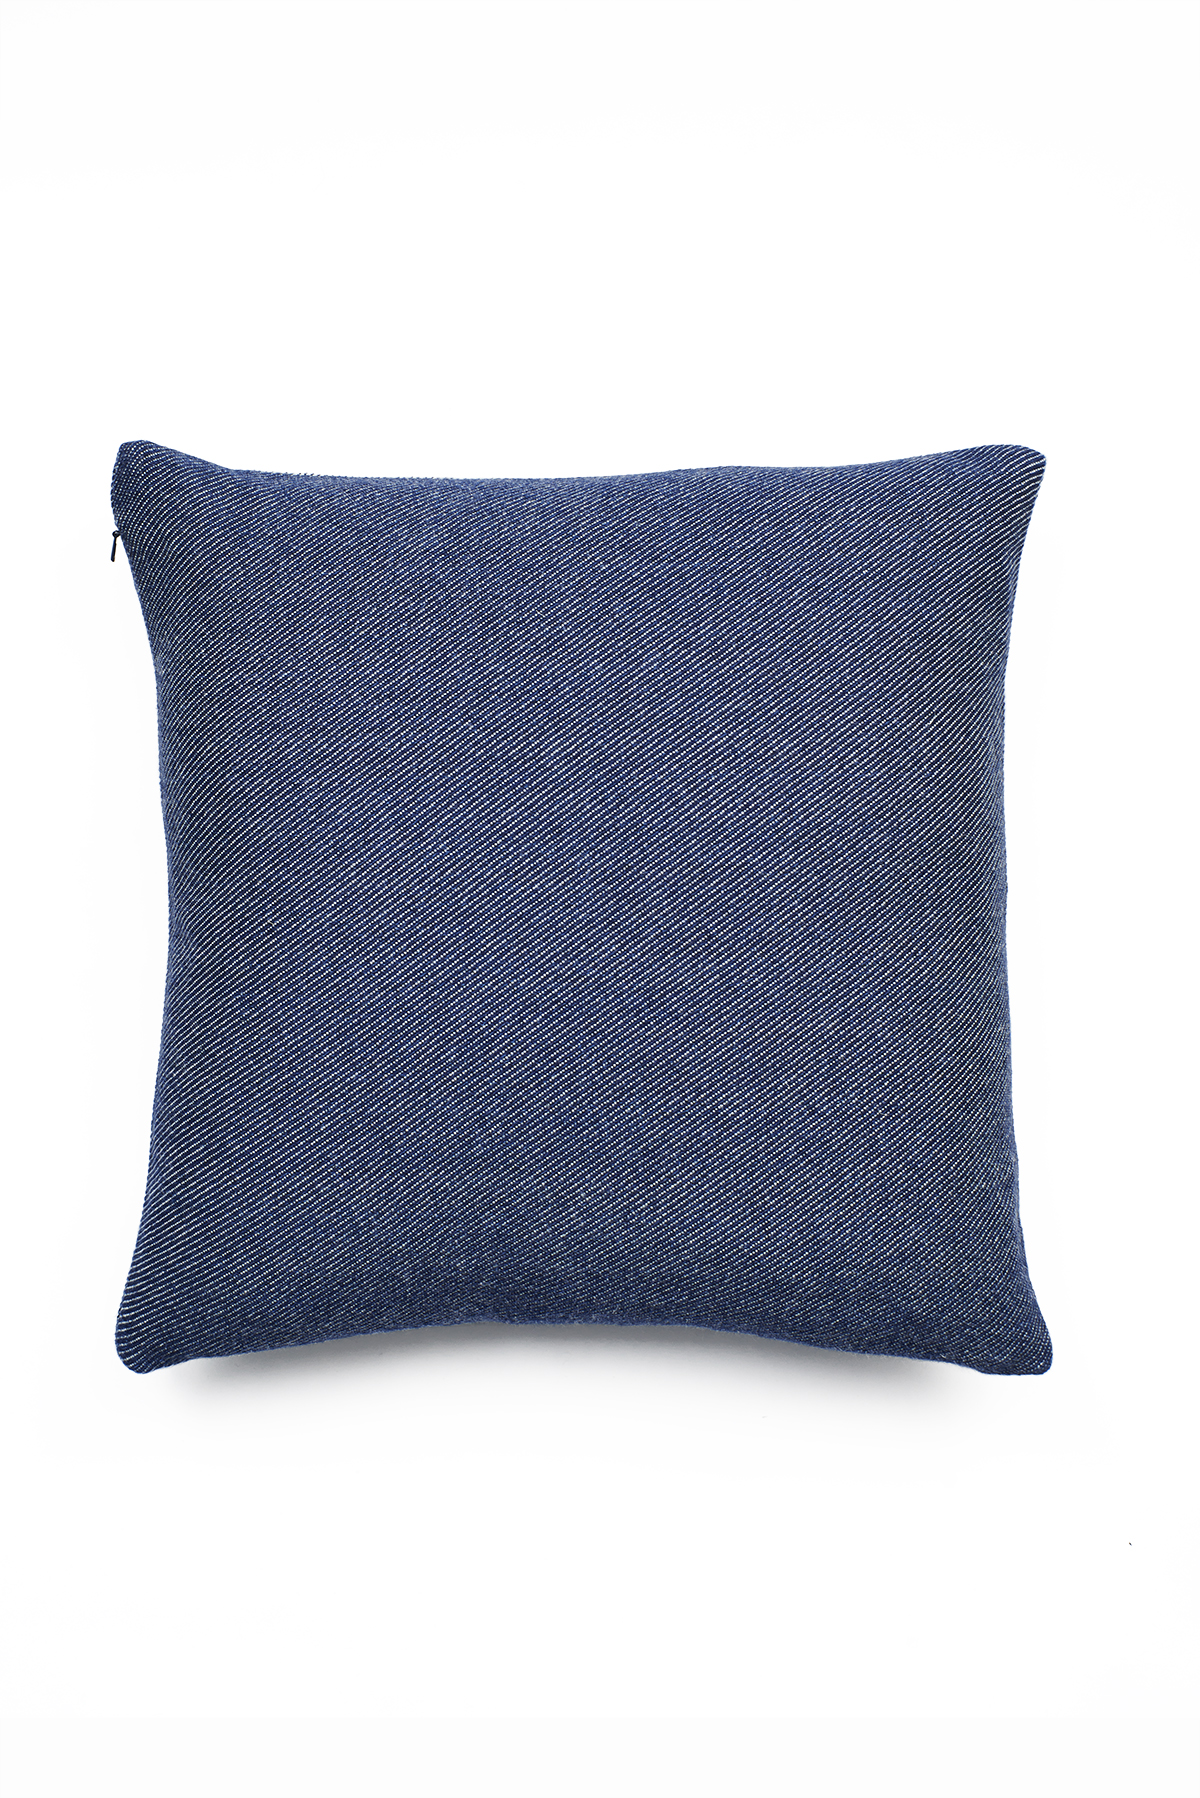 3eff7edd4a1a 'Lane x London Cloth' Indigo Cotton Cushion - Triangle — Lane